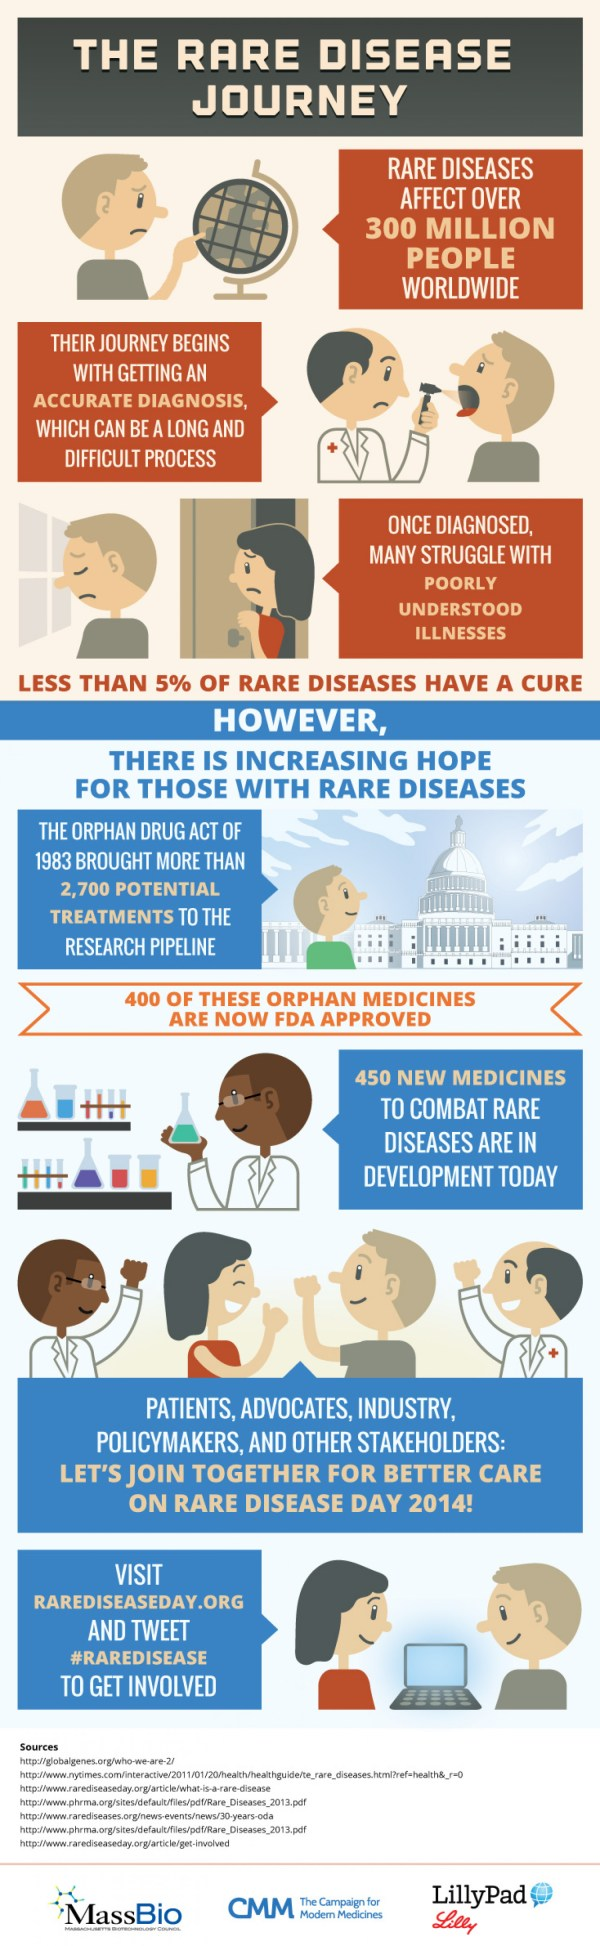 Rare Disease Journey Visual.ly